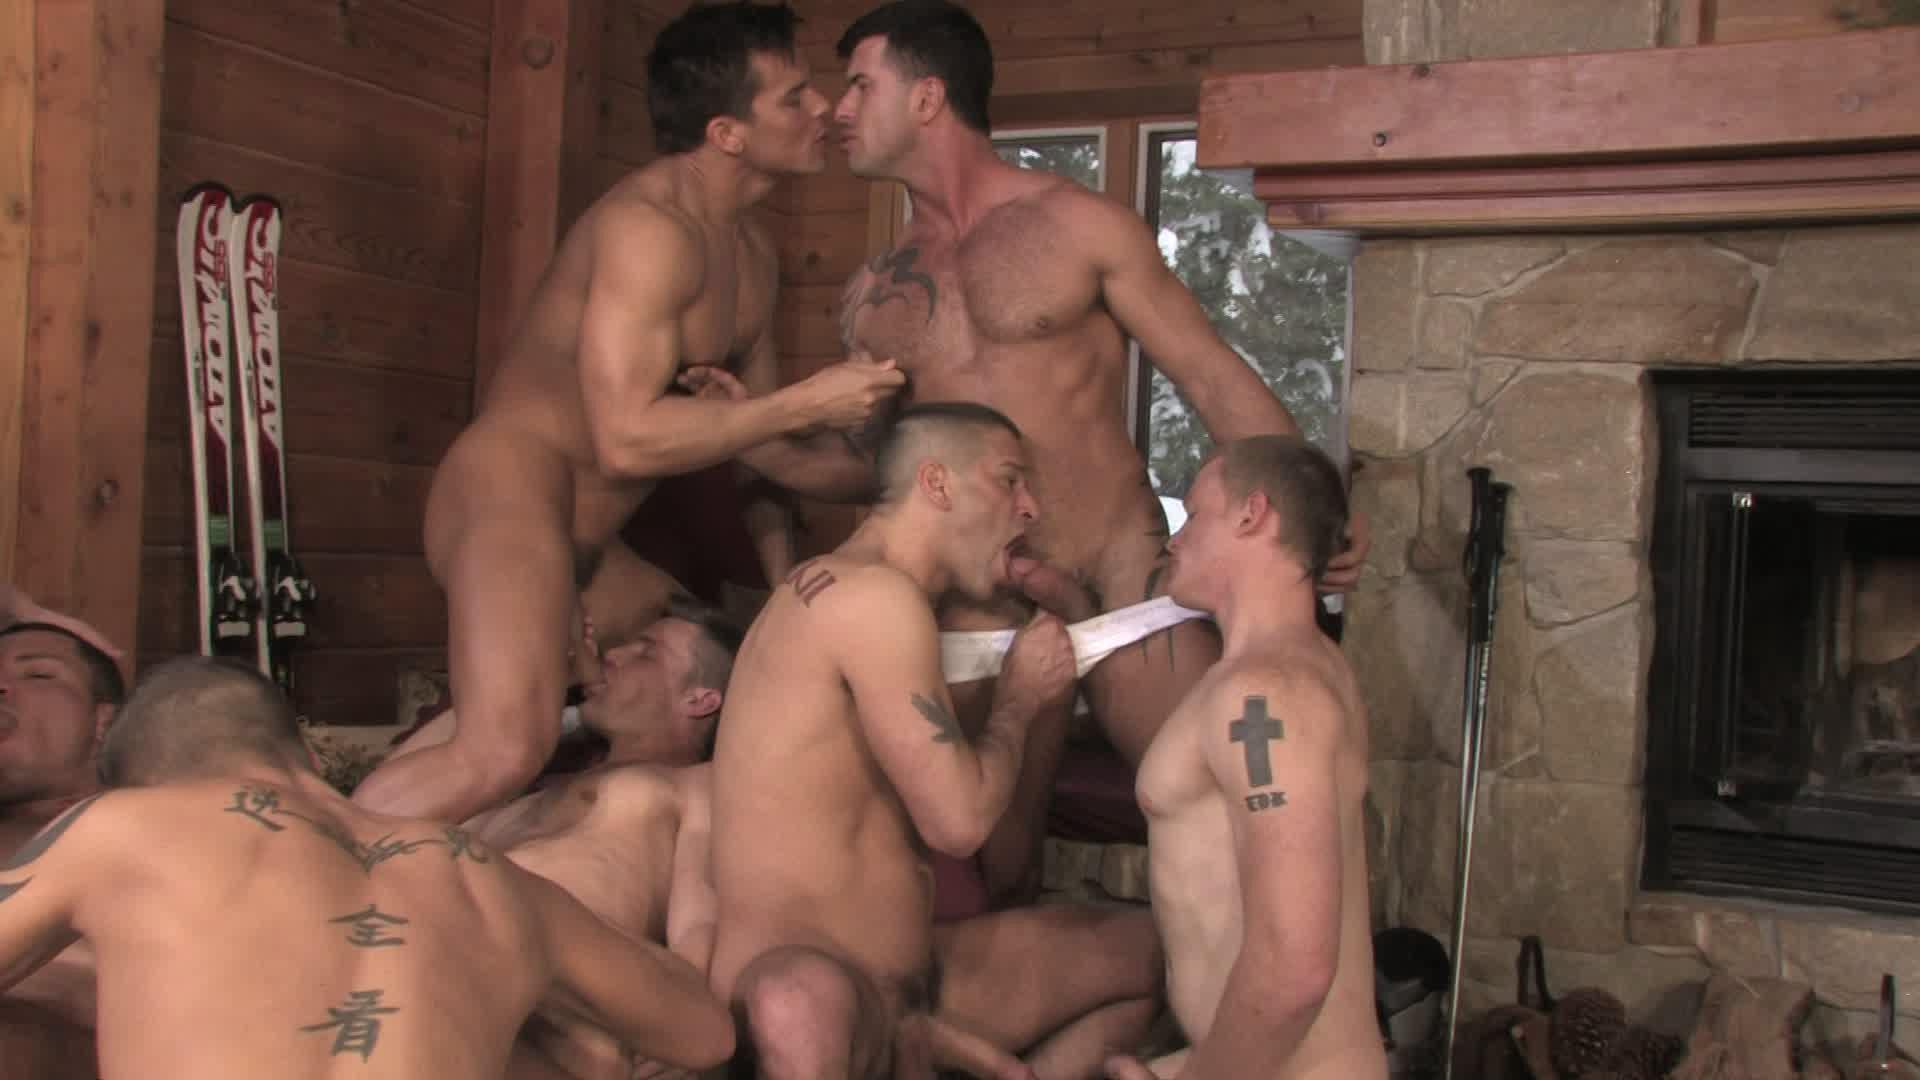 The Other Side Of Aspen 6 Xvideo gay